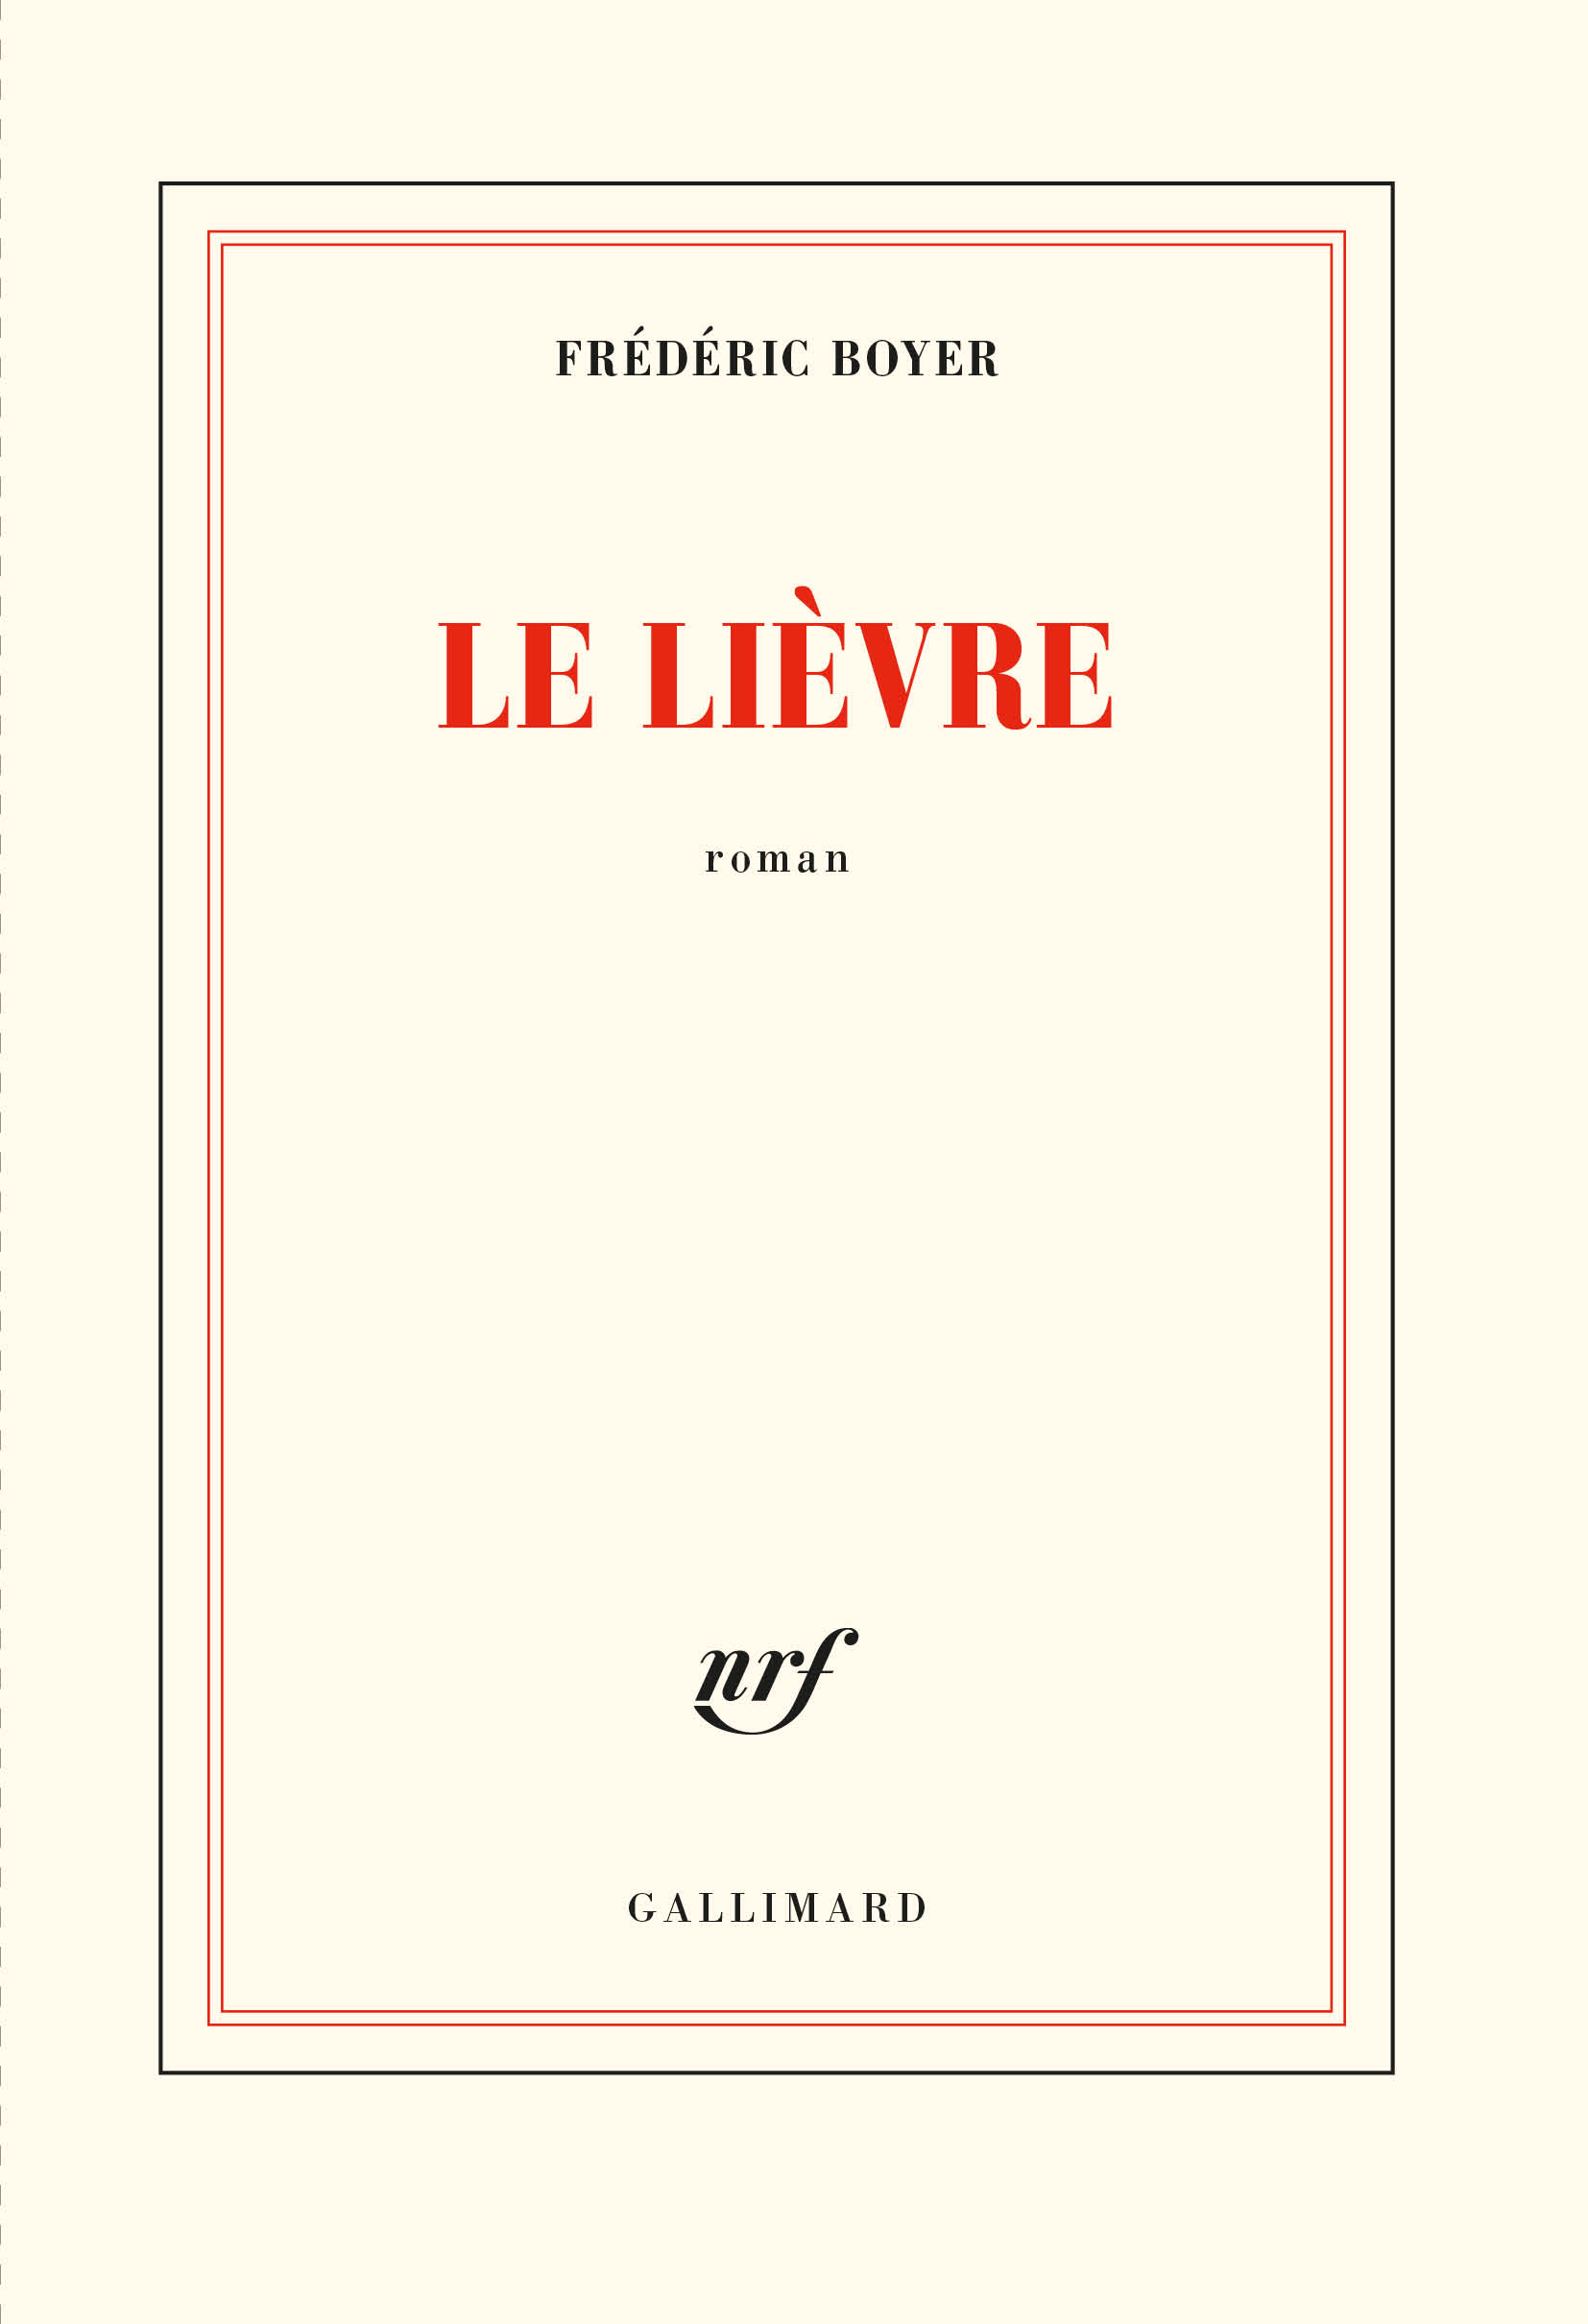 Le lièvre Frederic Boyer Gallimard